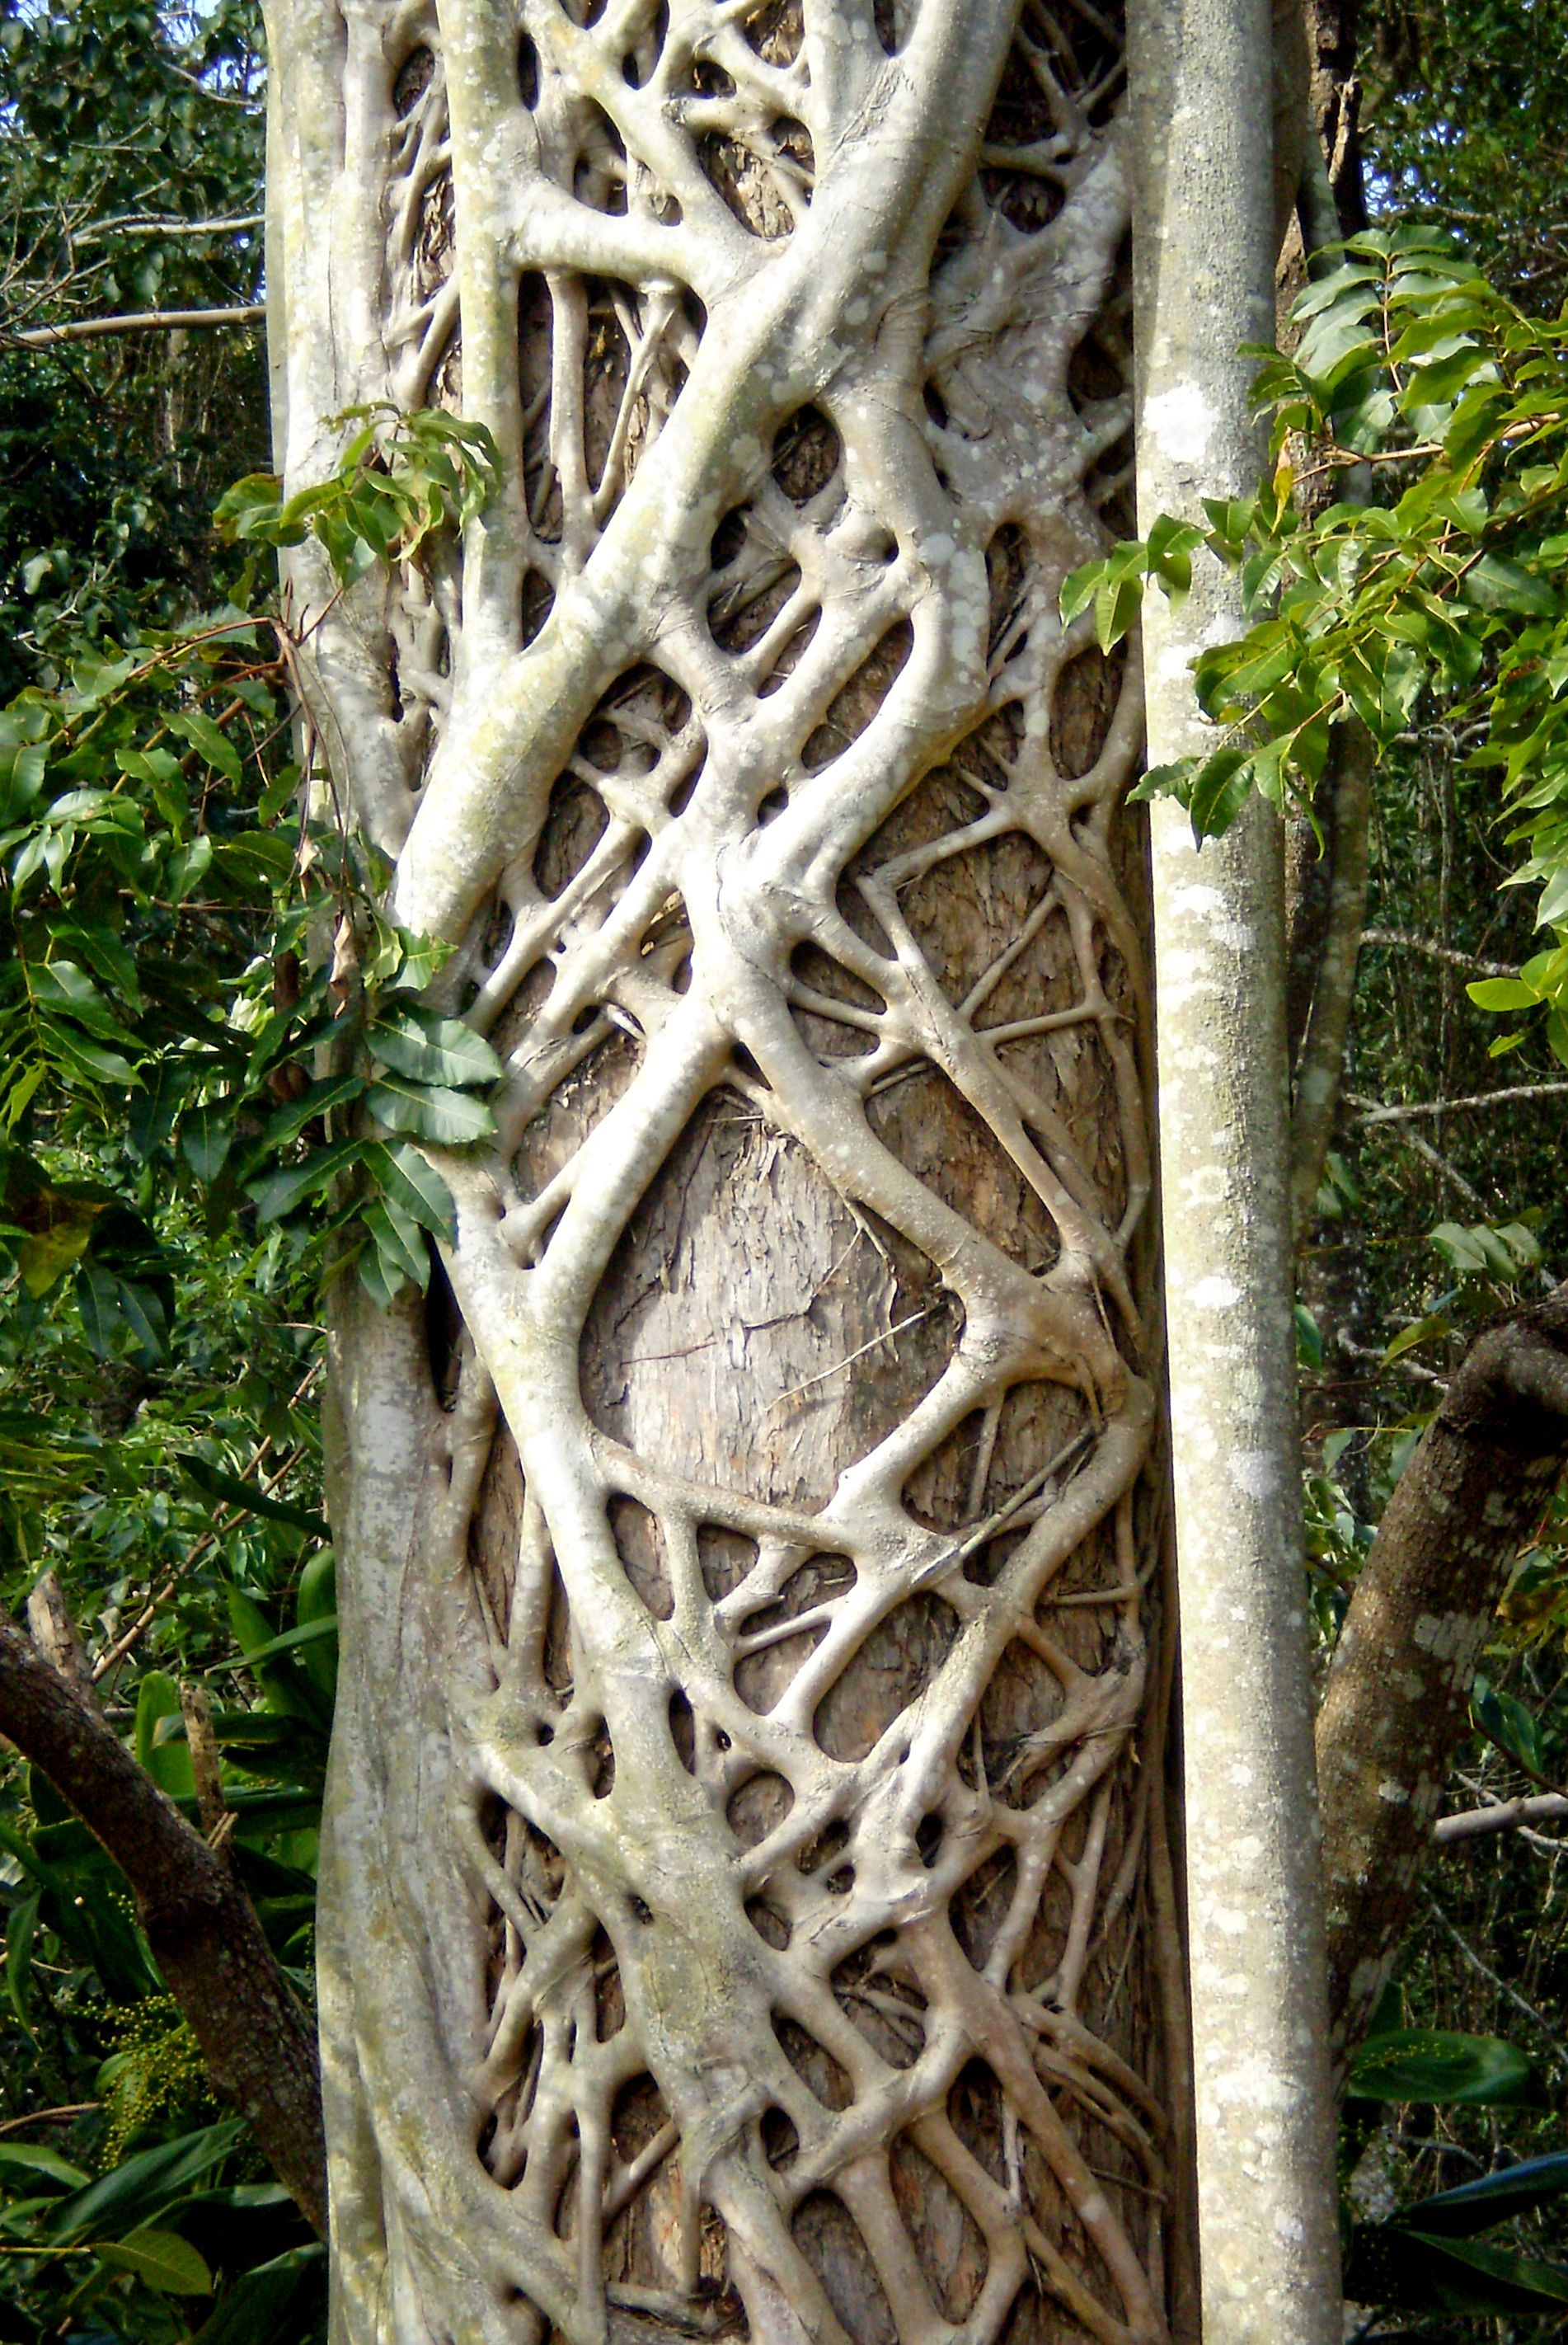 A tree with a strangler fig growing on the surface creates ...